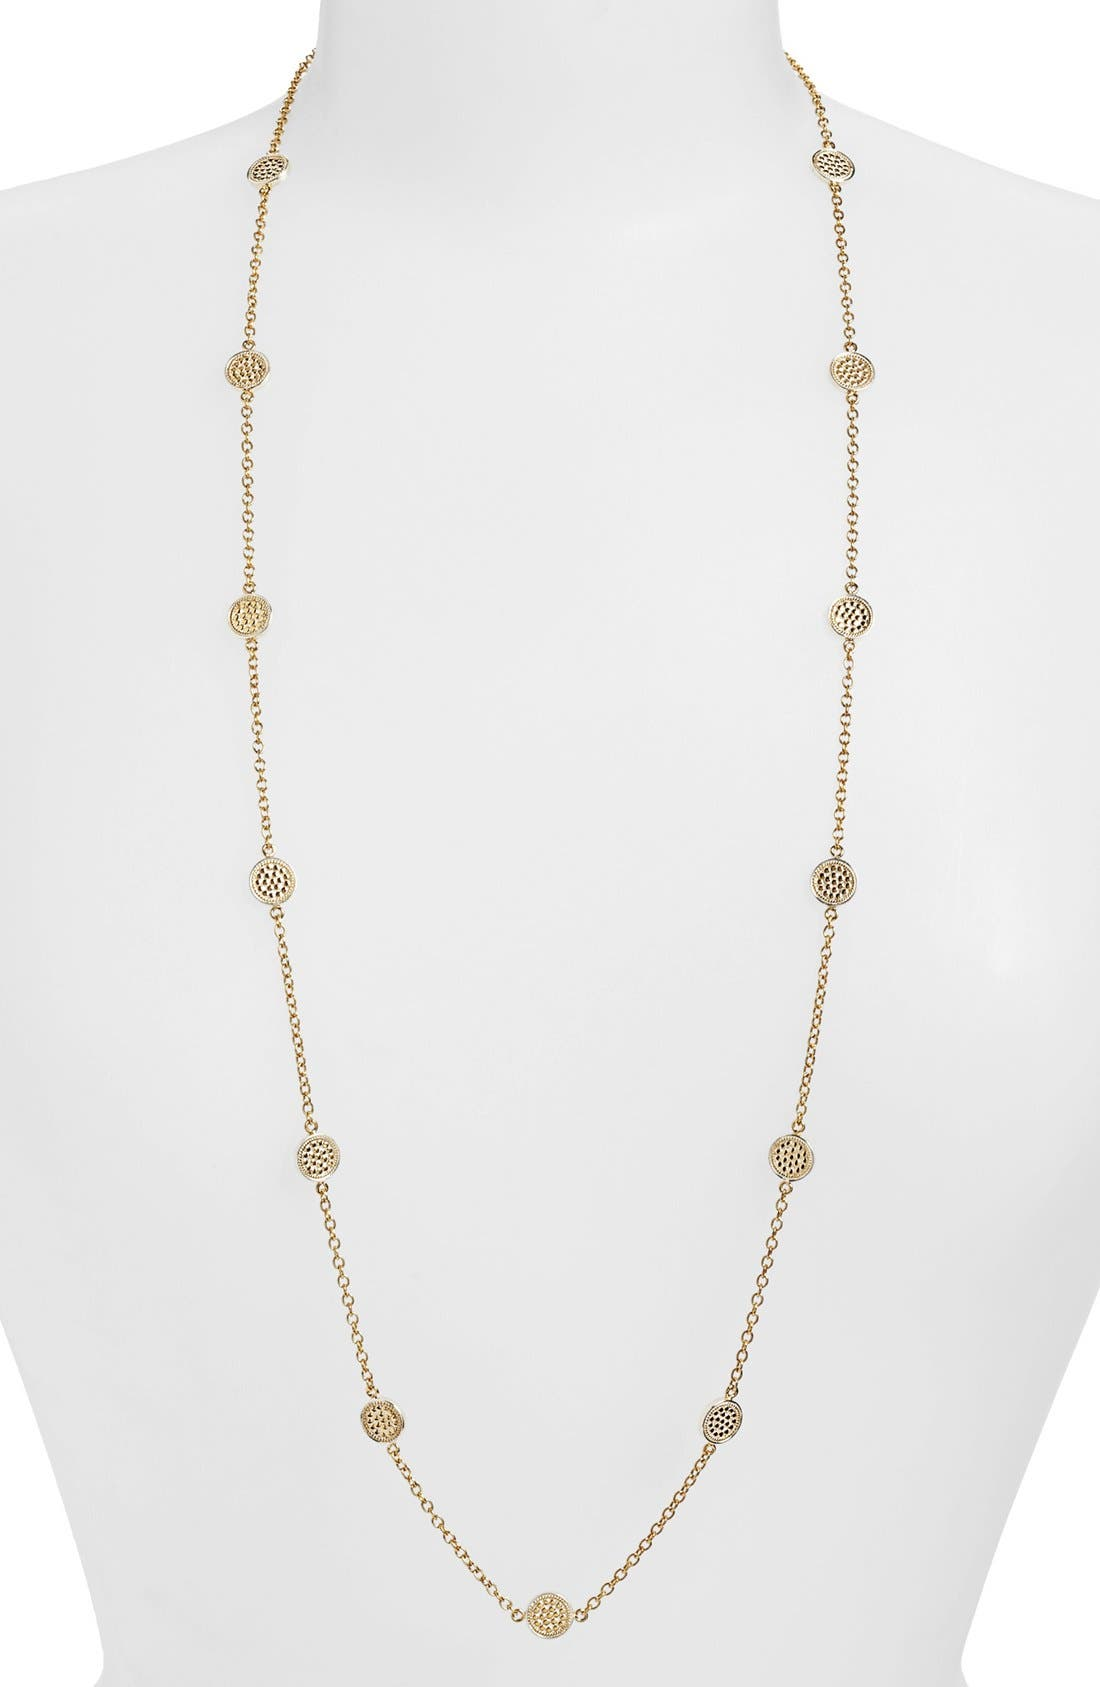 Alternate Image 1 Selected - Anna Beck 'Gili' Mini Disc Long Necklace